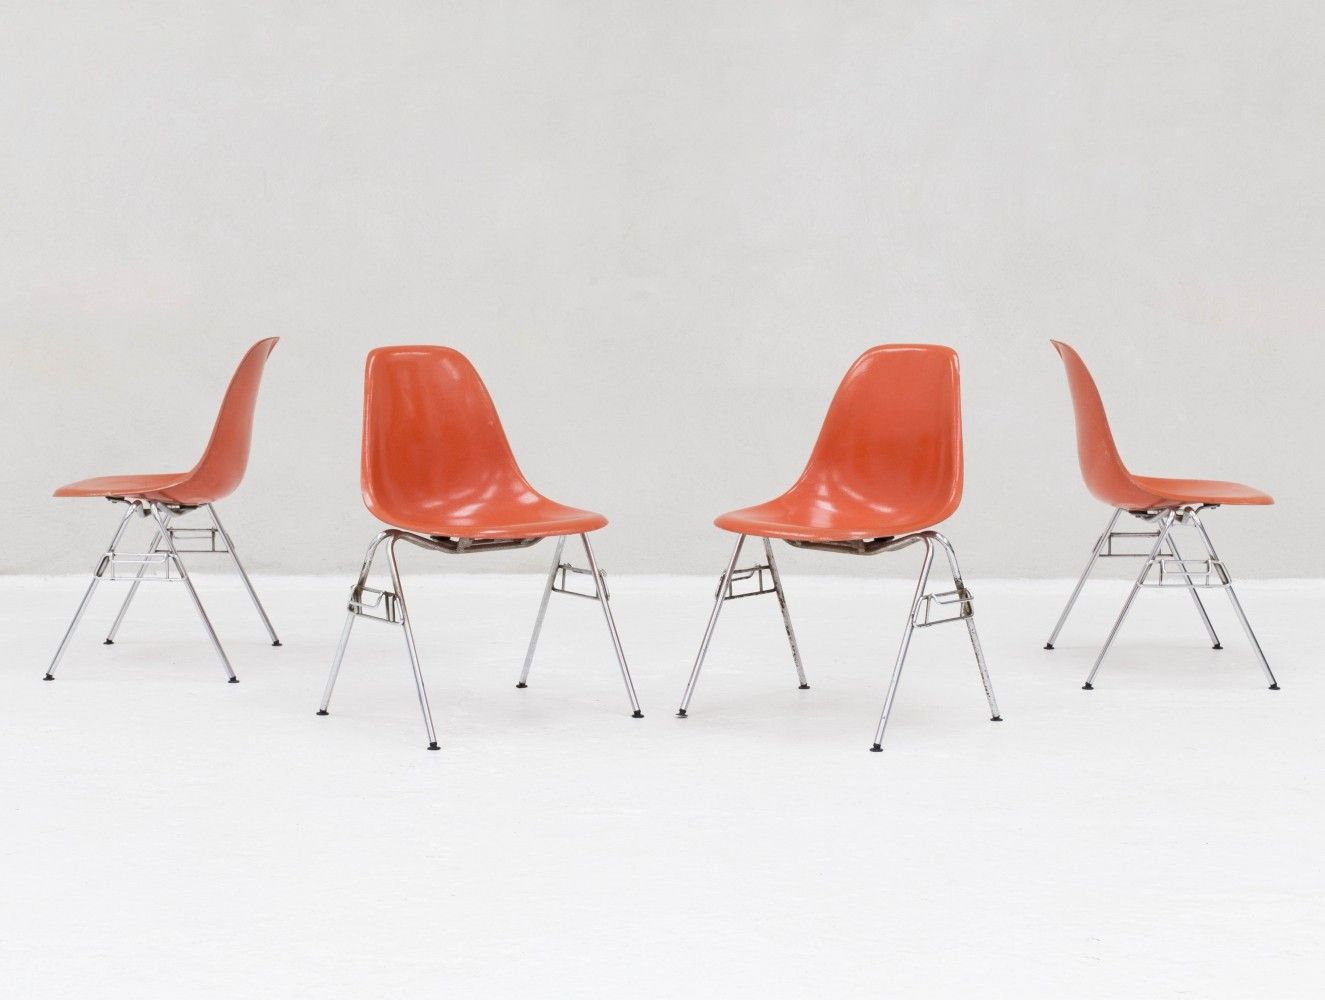 set of 4 dss stacking chairs in fiberglass by charles ray eames